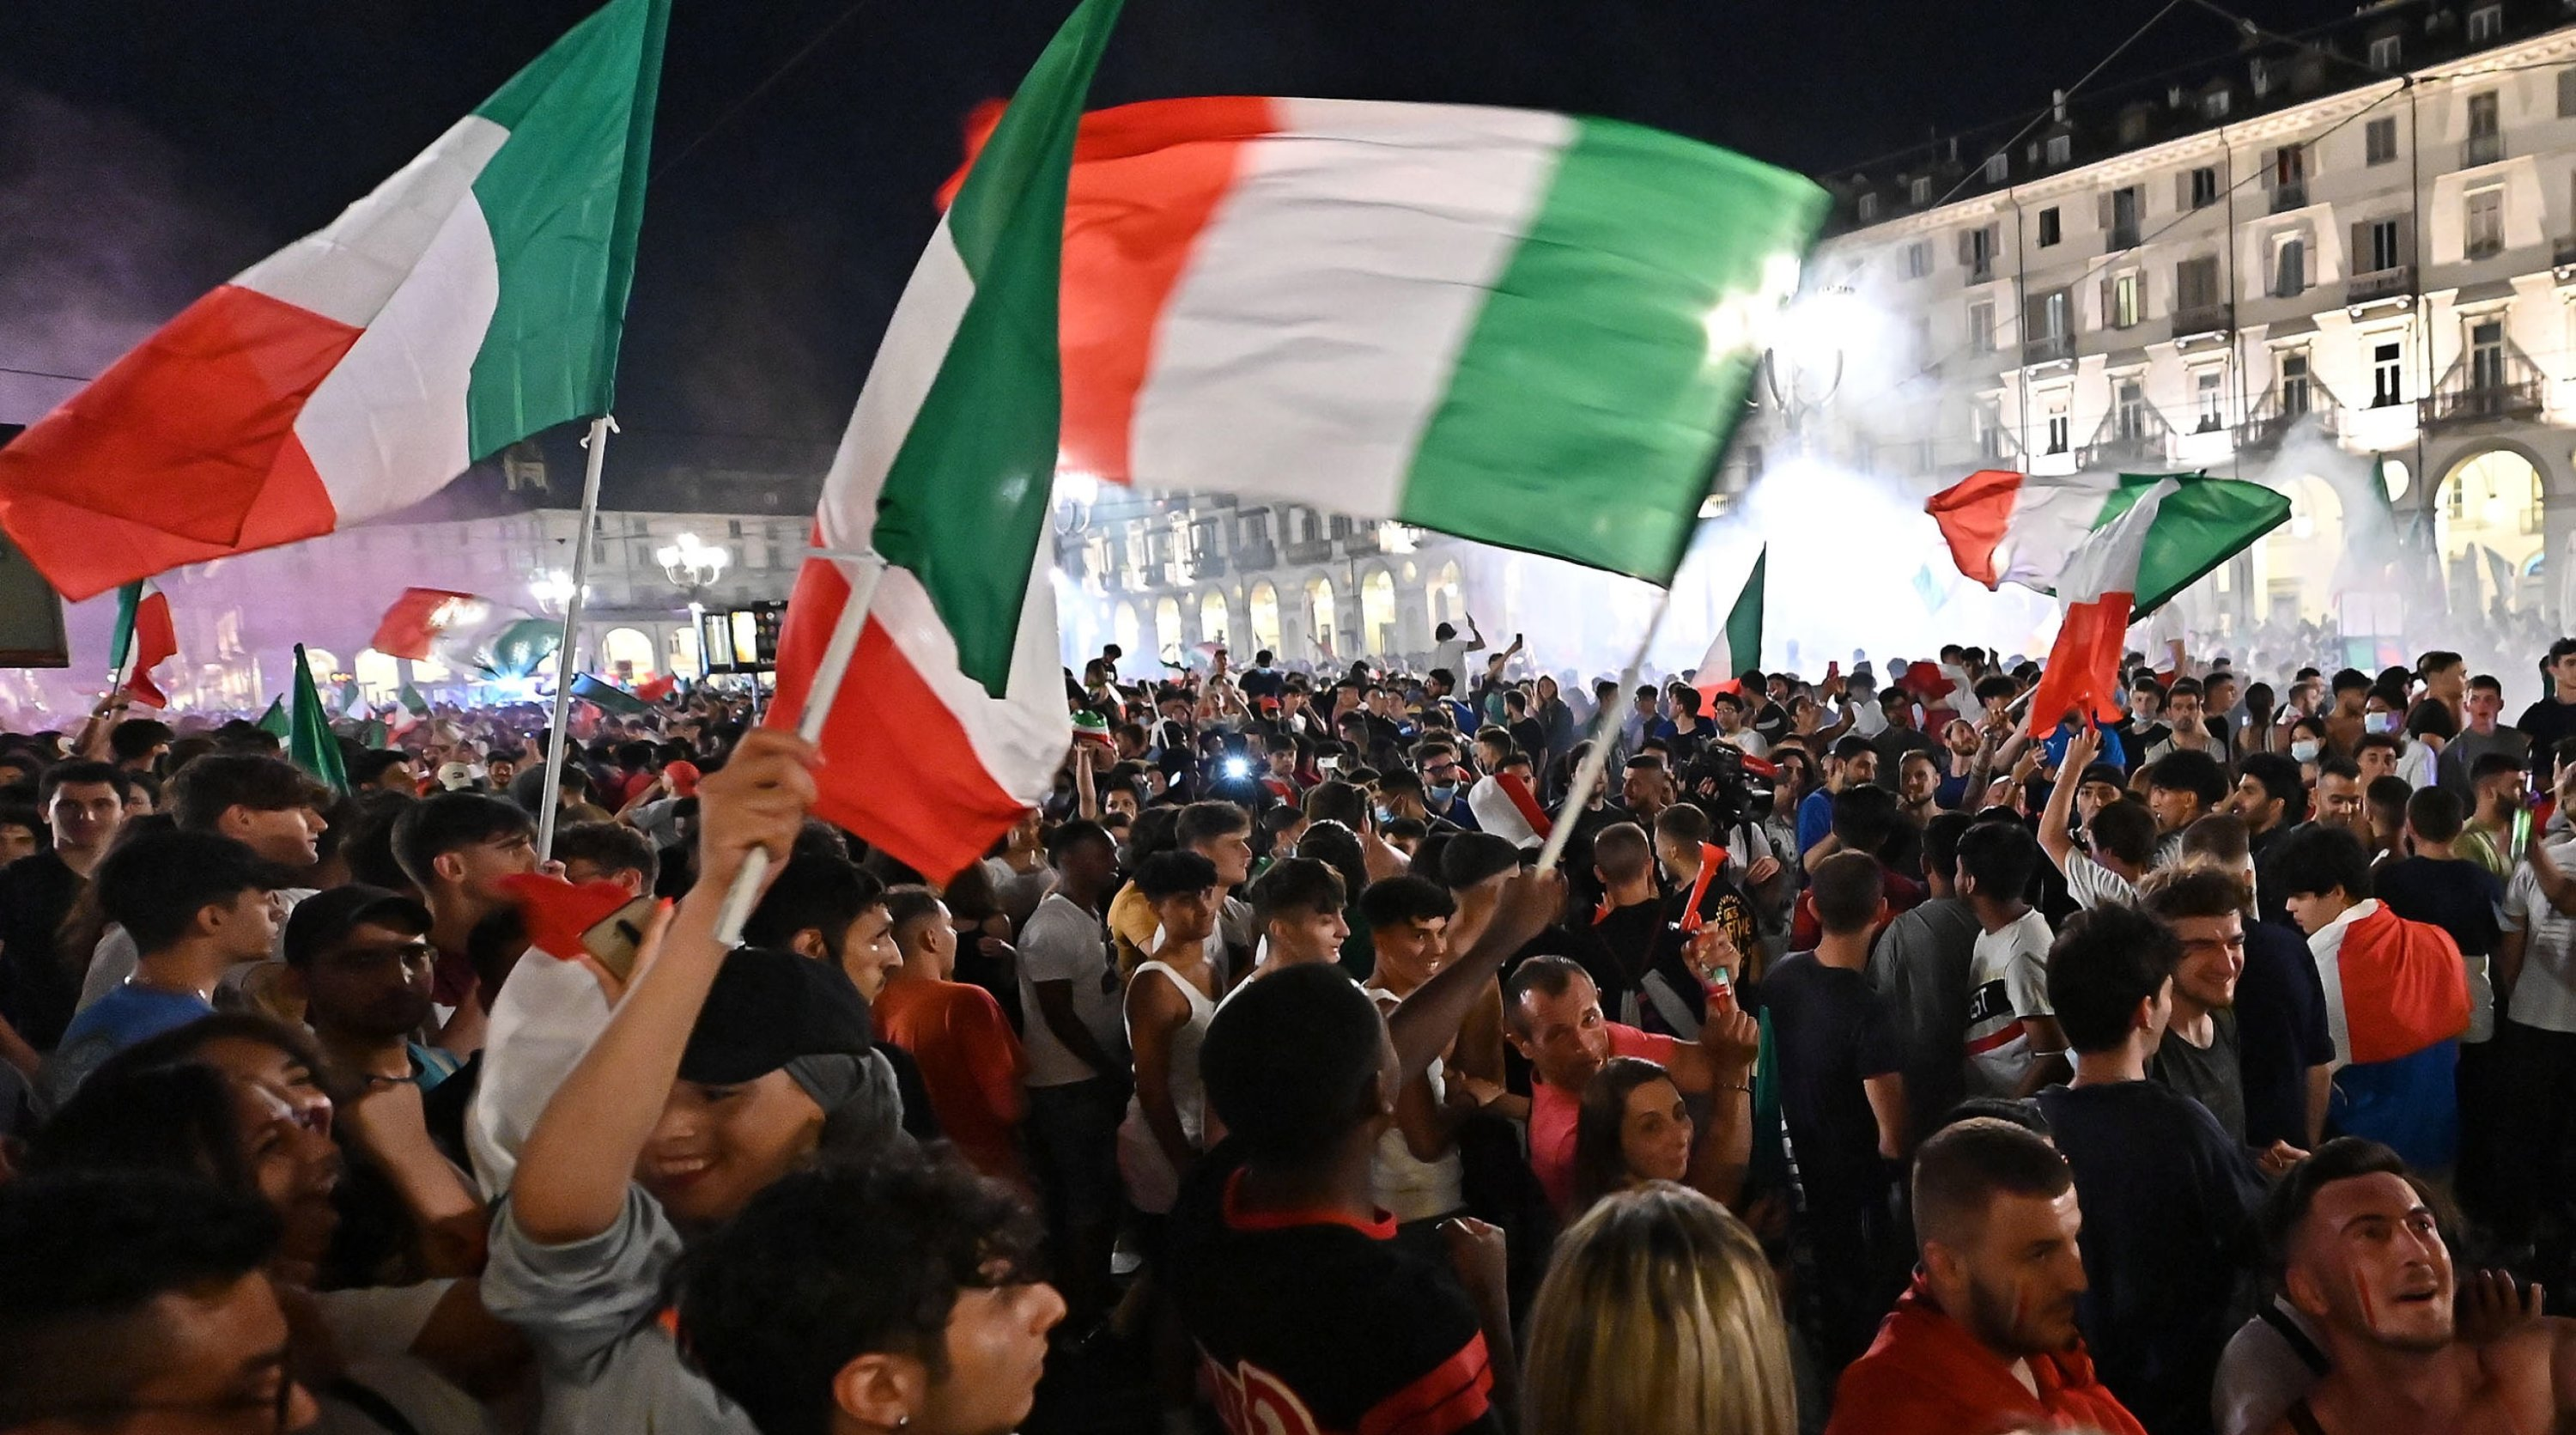 Italy supporters celebrate their team's UEFA Euro 2020 final victory over England, Turin, northern Italy, July 11, 2021. (EPA Photo)